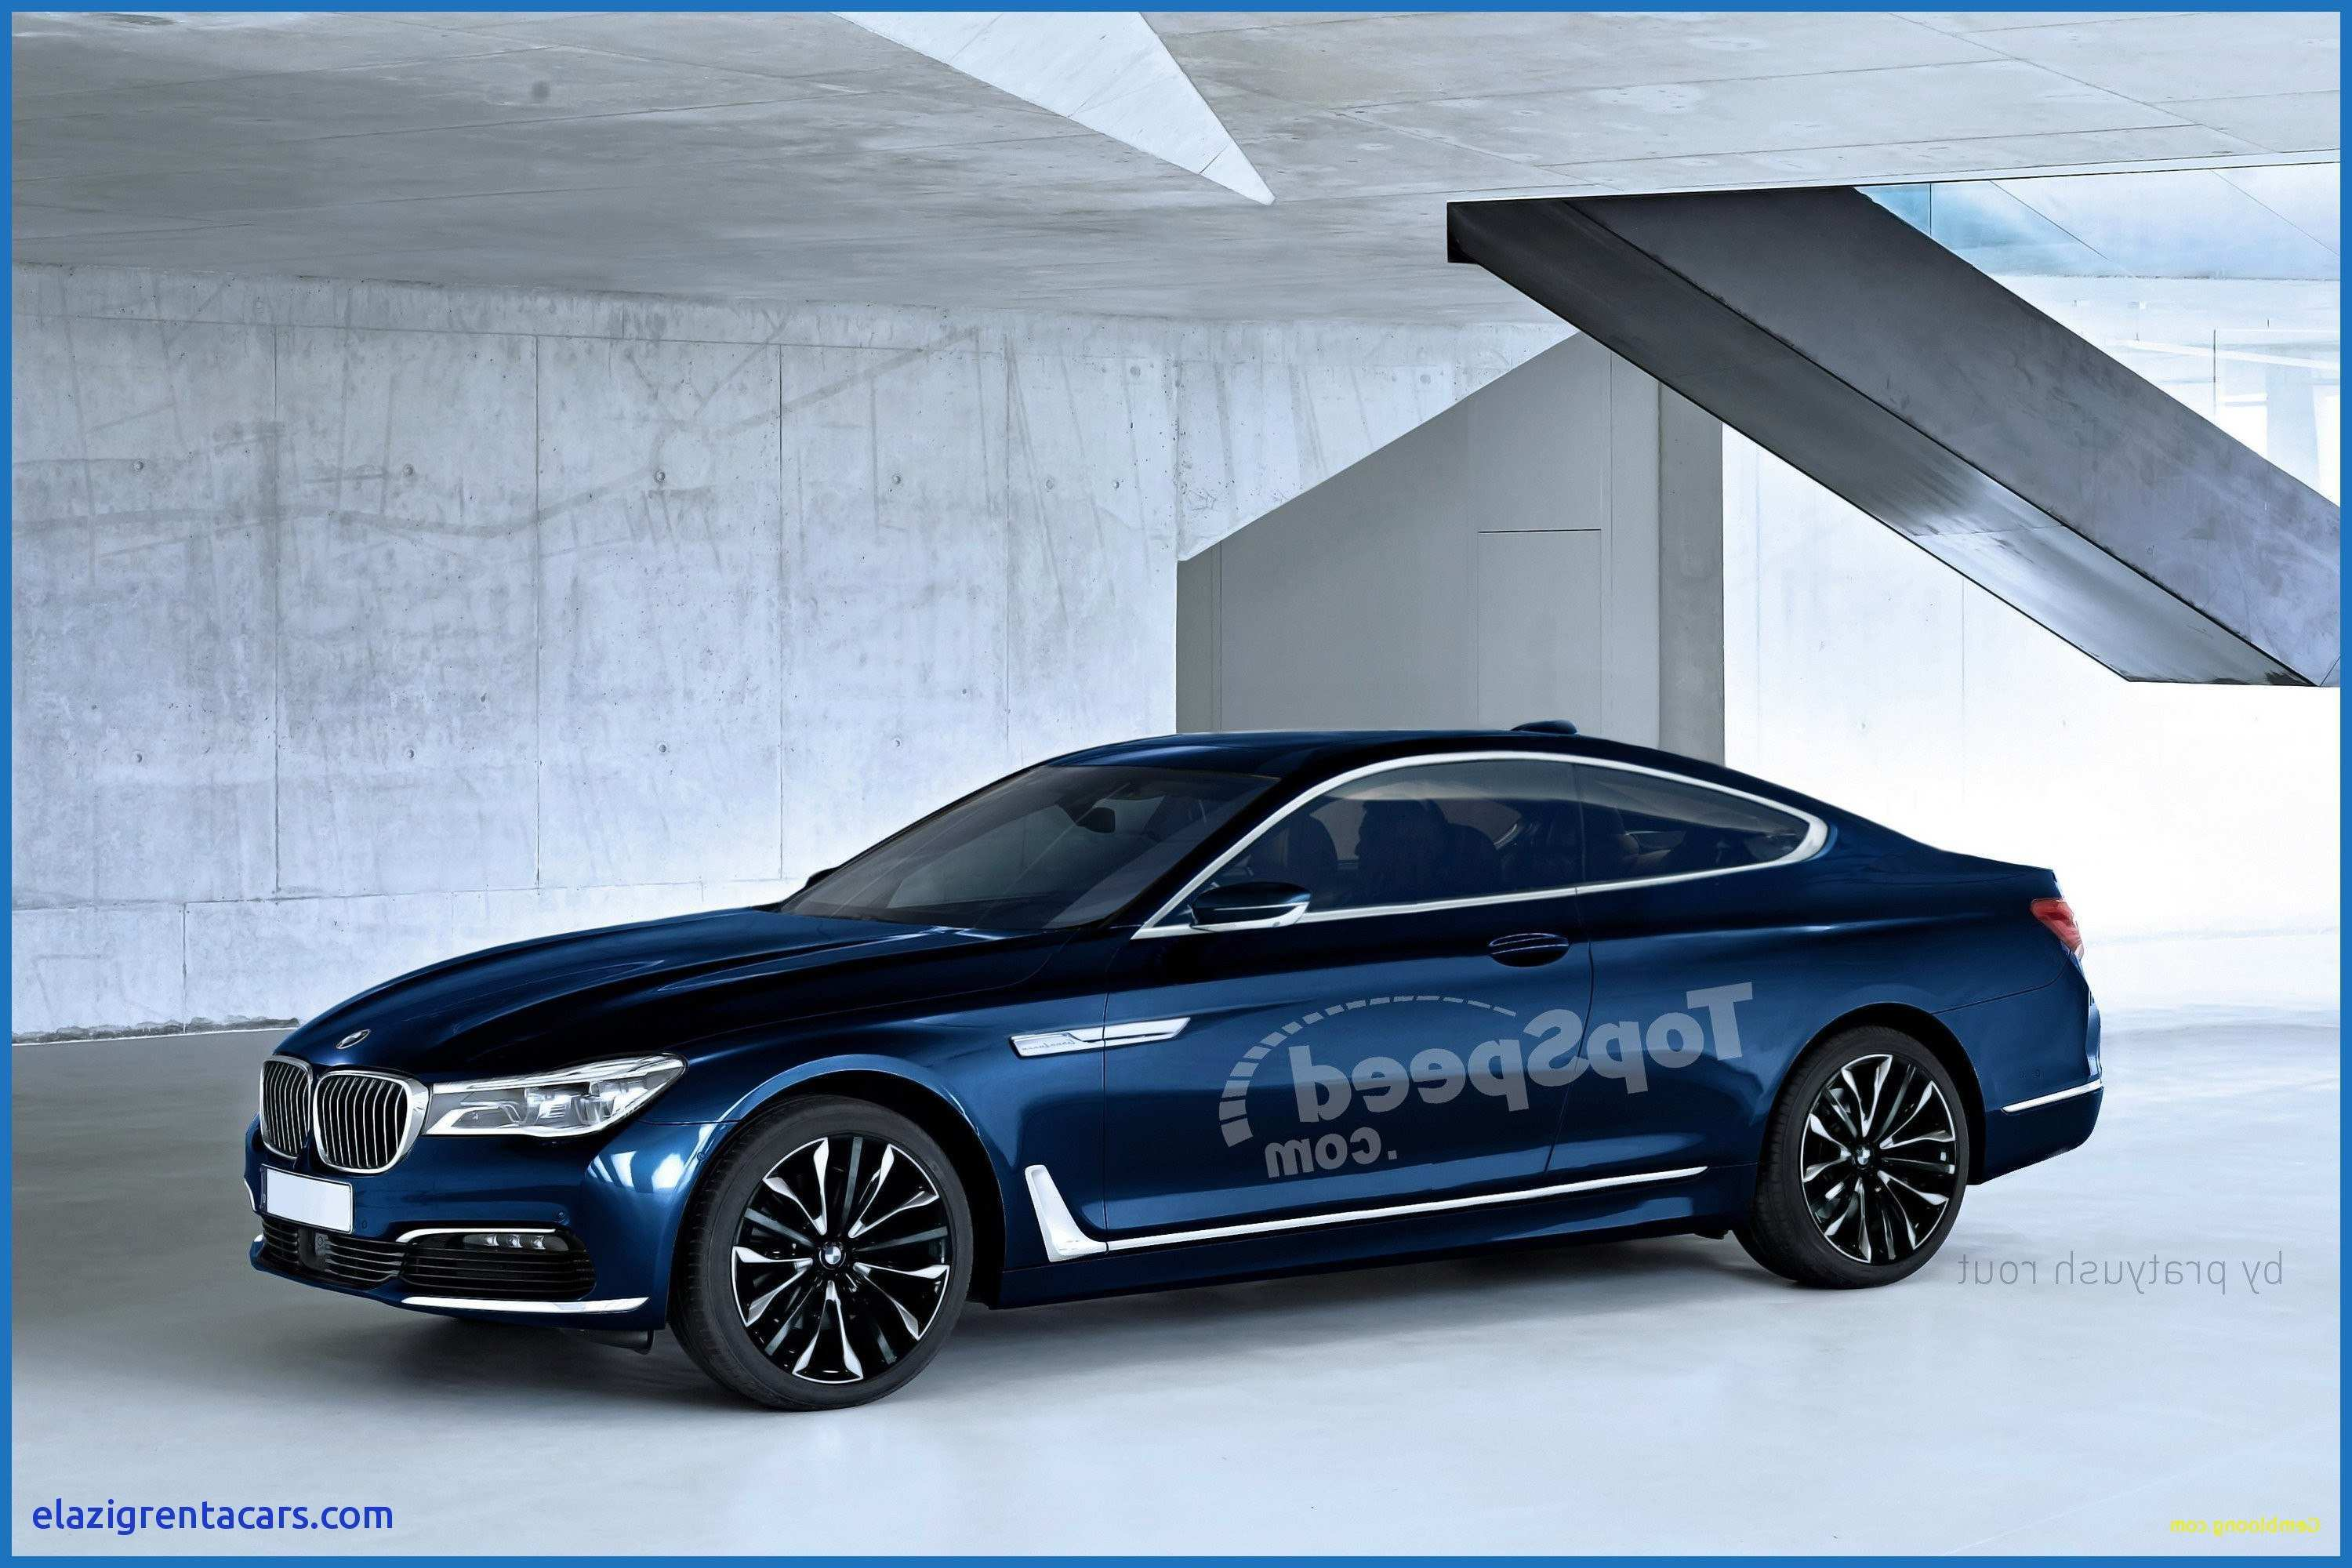 55 Concept of 2020 Lincoln Town Car Prices with 2020 Lincoln Town Car